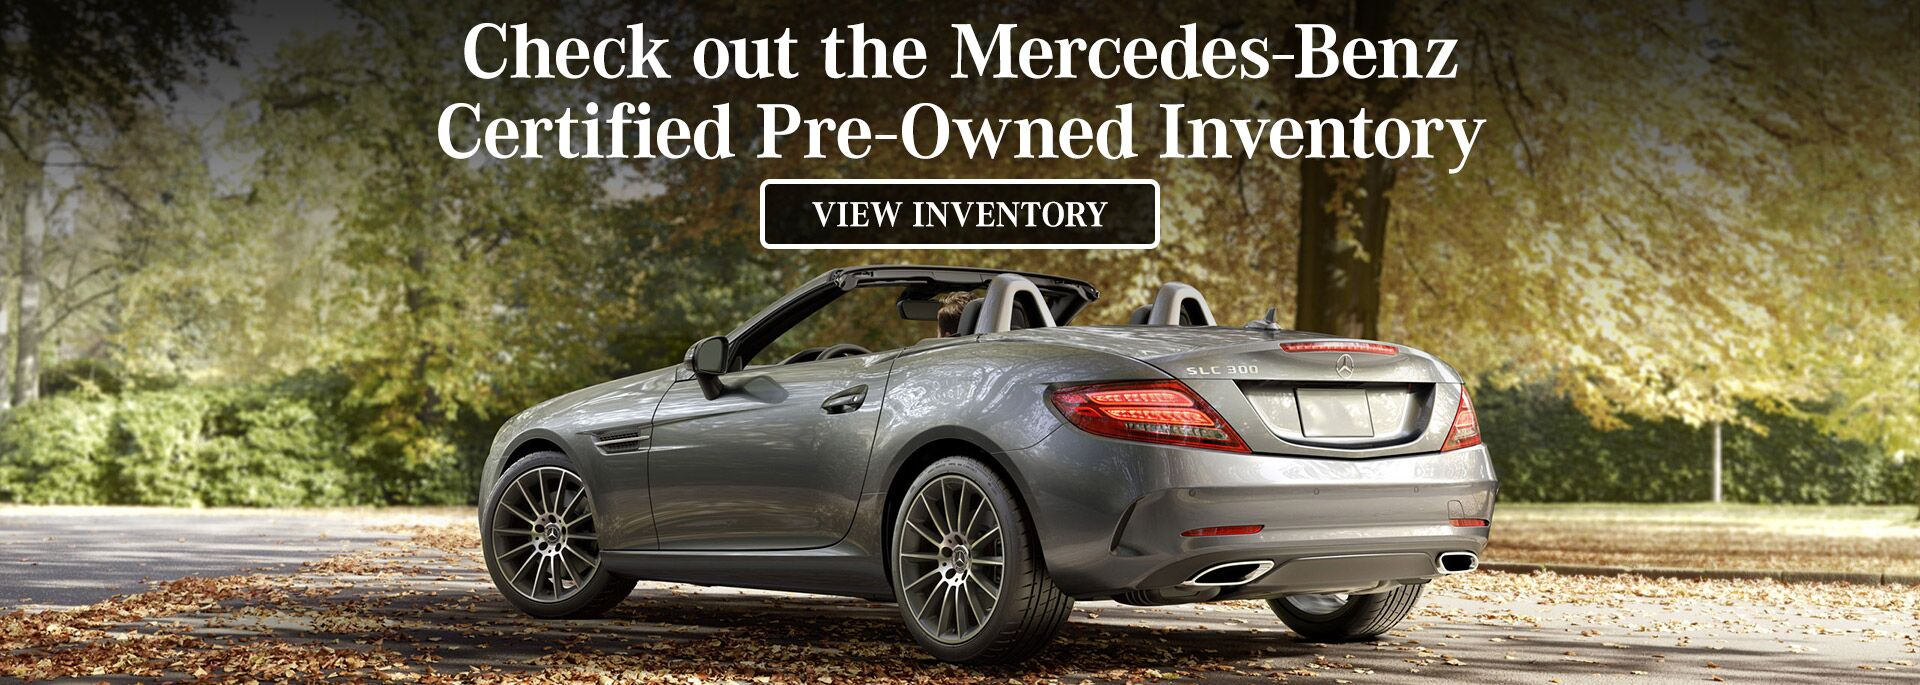 Mercedes Pre-Owned